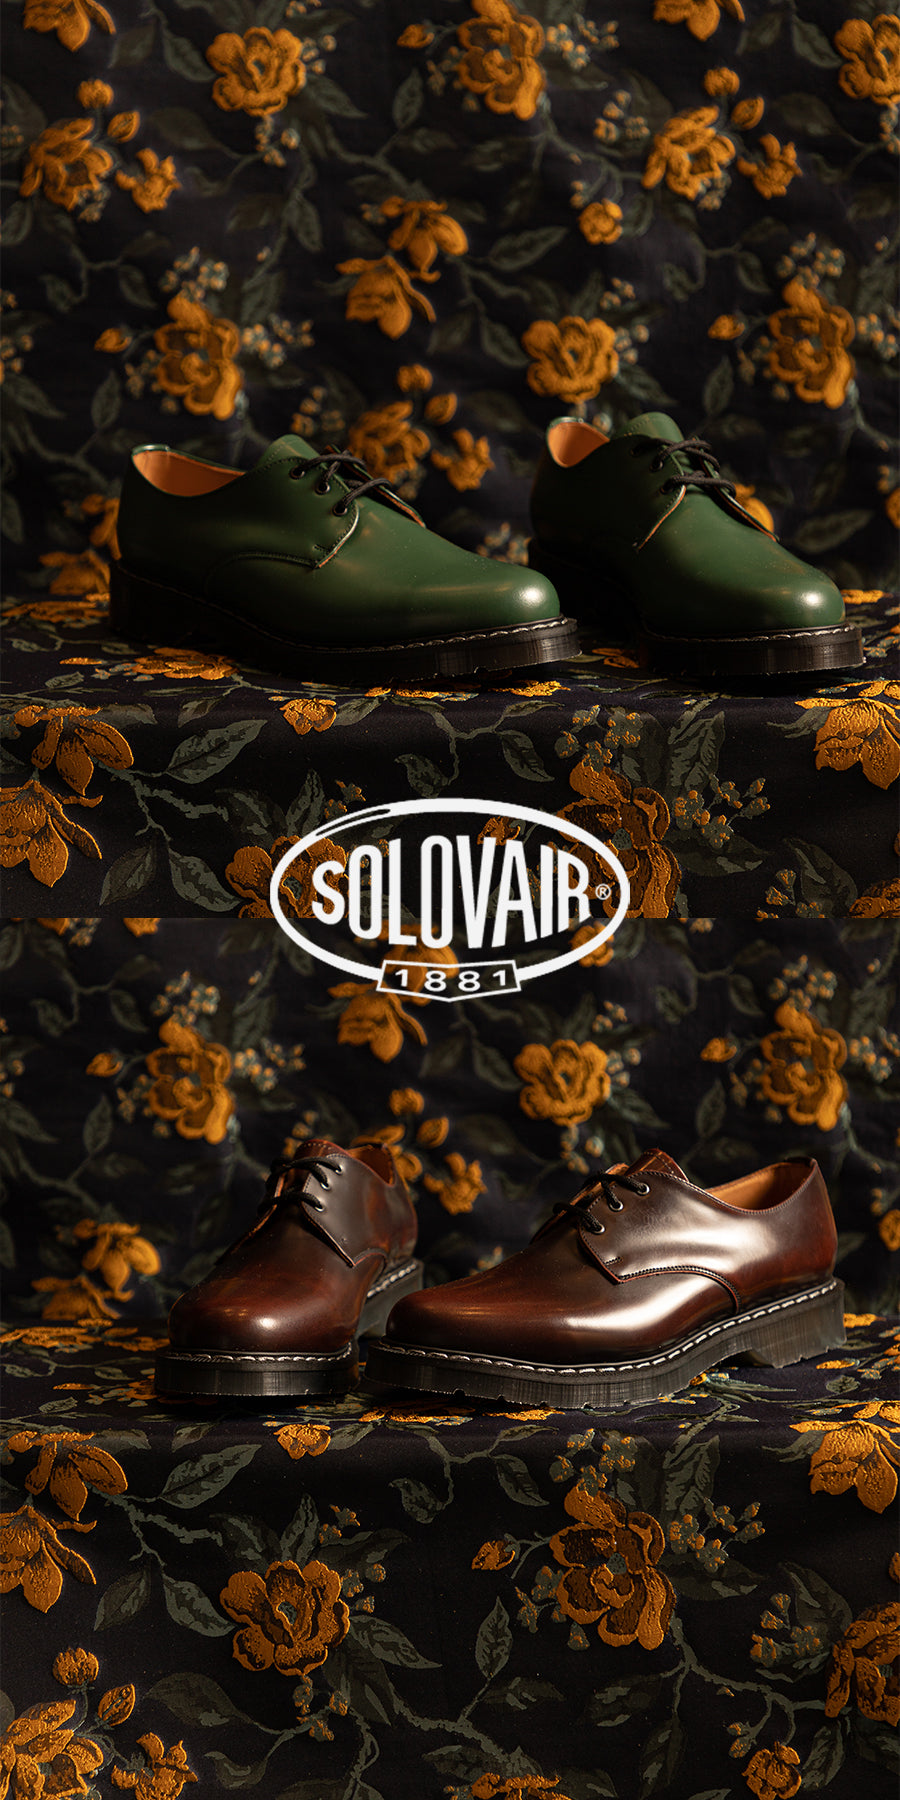 solovair spring summer 21 gibson 3 eye tassel loafers single buckle monk shoe available wallace mercantile shop vancouver canada